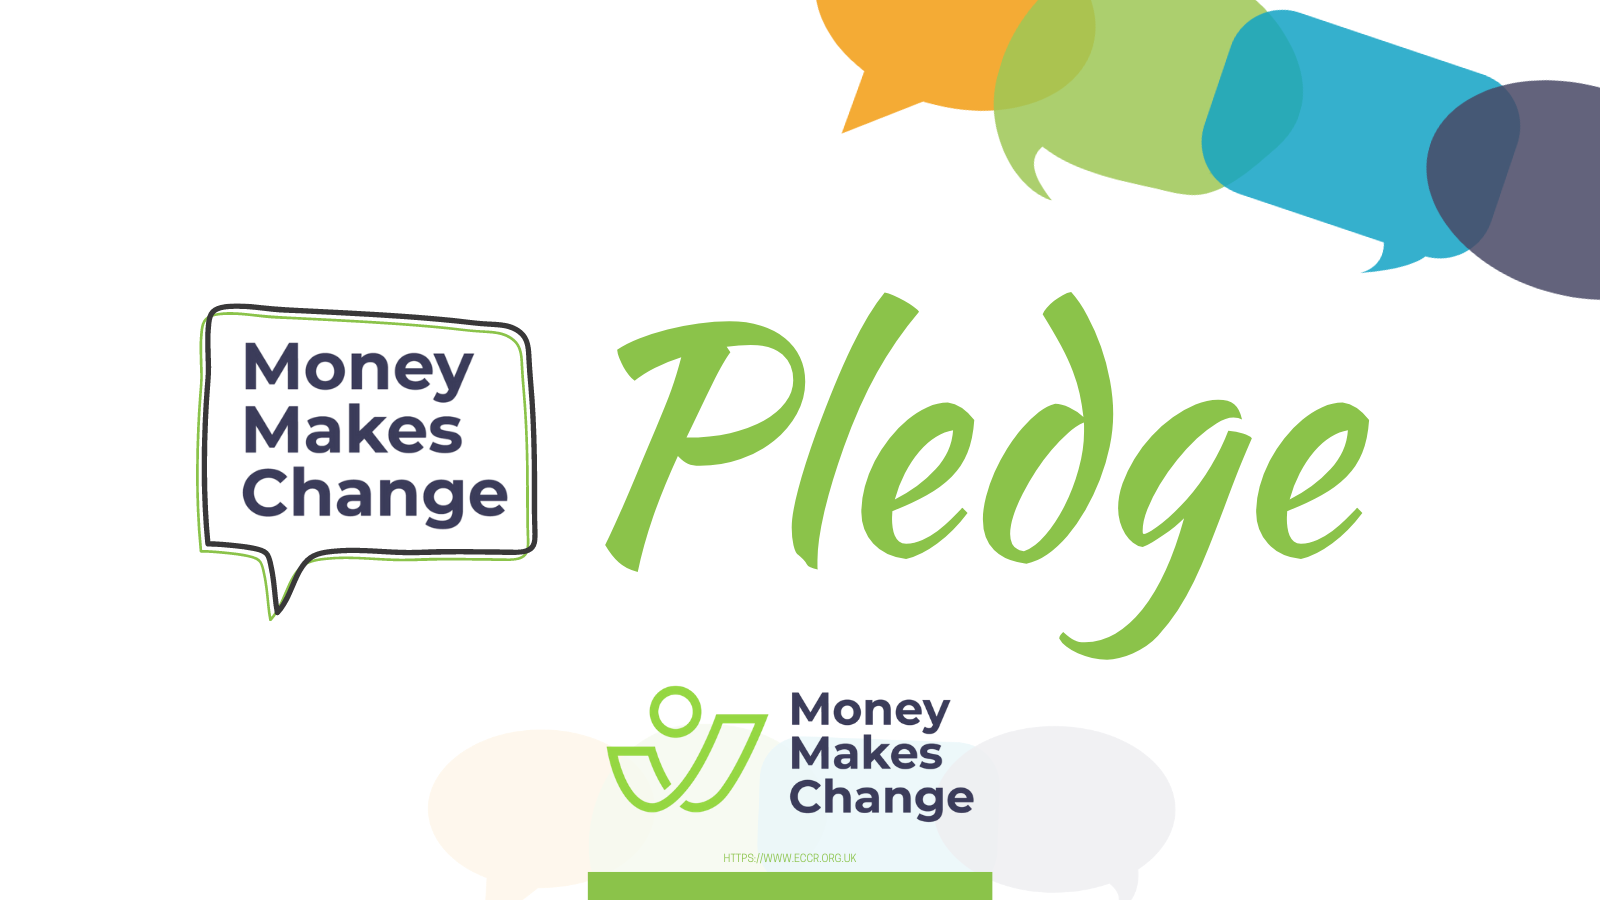 Introducing …. the Money Makes Change Pledge